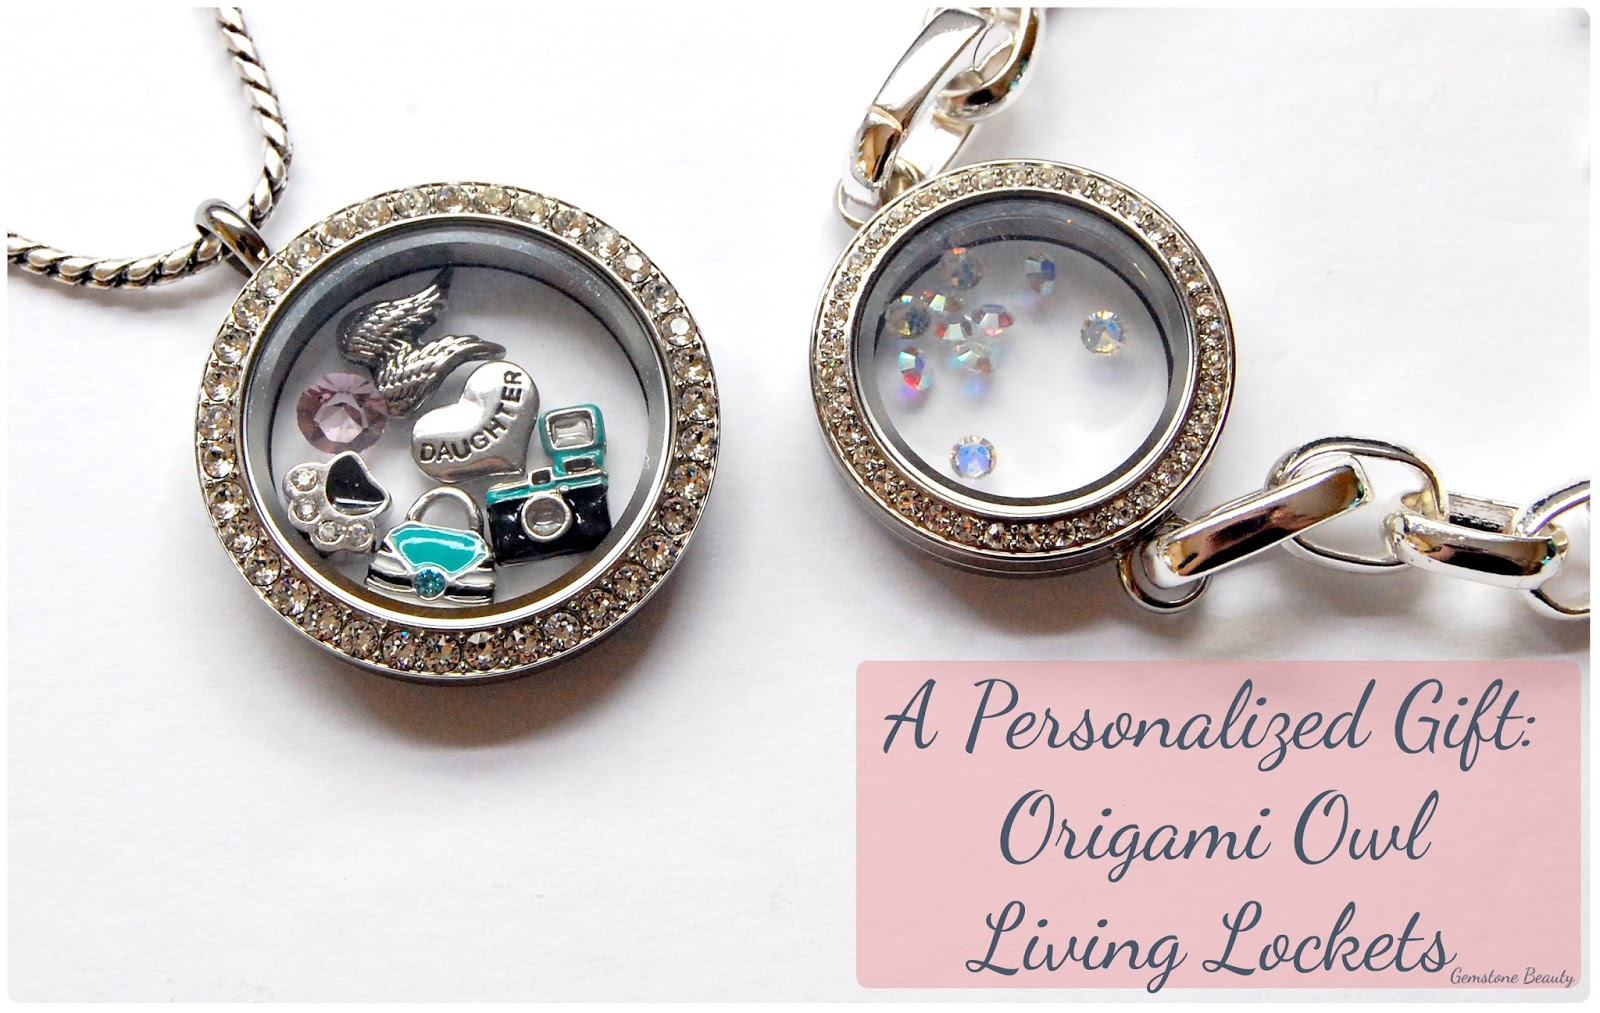 Gemstone Beauty: A Personal birthday gift: Origami Owl ... - photo#29